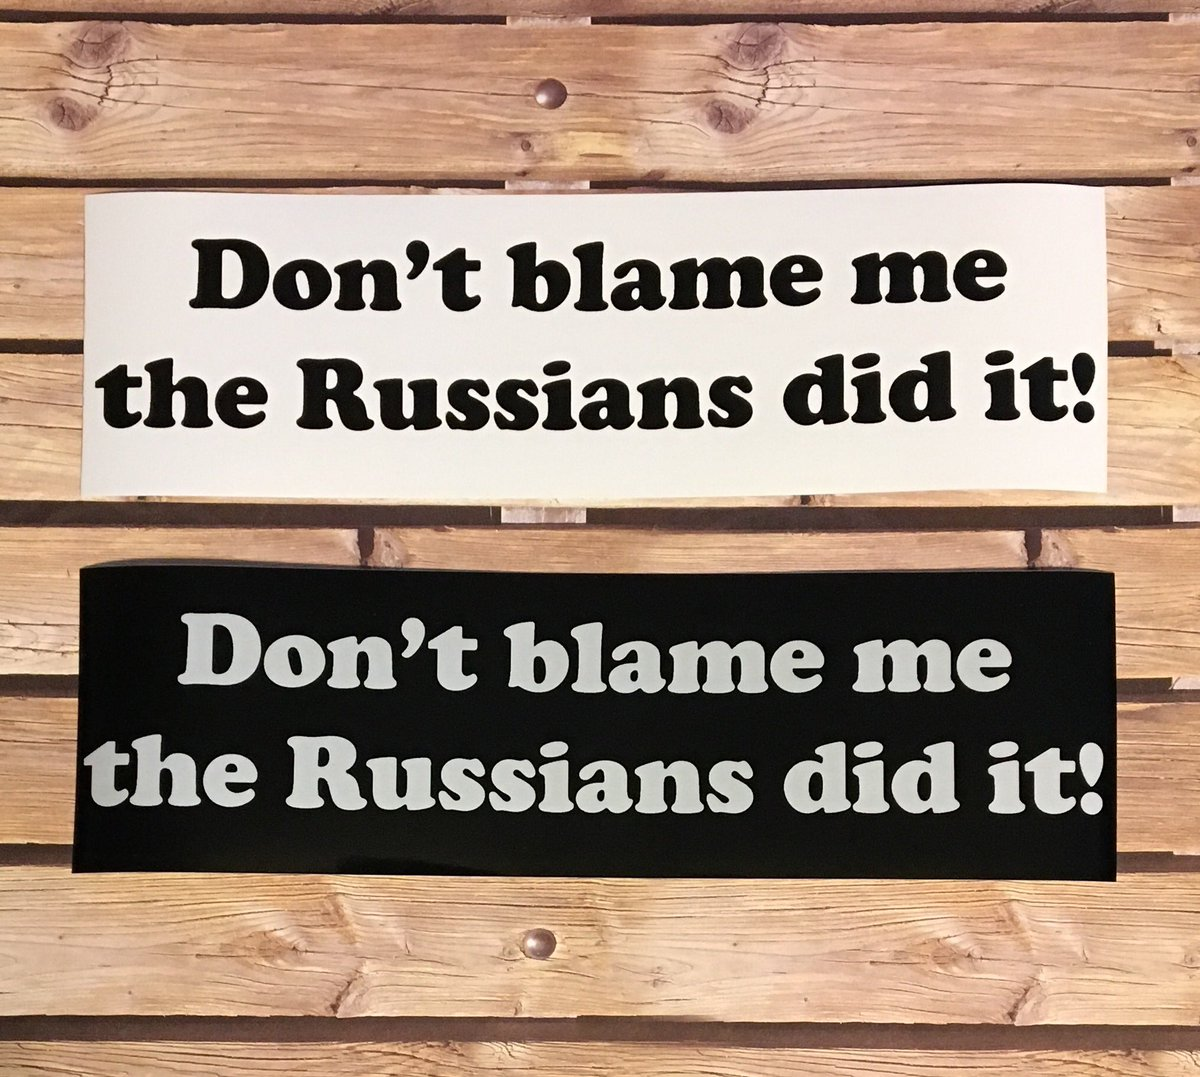 New listing posting soon!  Best excuse ever!!  #bumperstickers #russiansdidit #dontblameme #excuses #bestexcuse #bestexcuseever<br>http://pic.twitter.com/jFHTTPM40Y